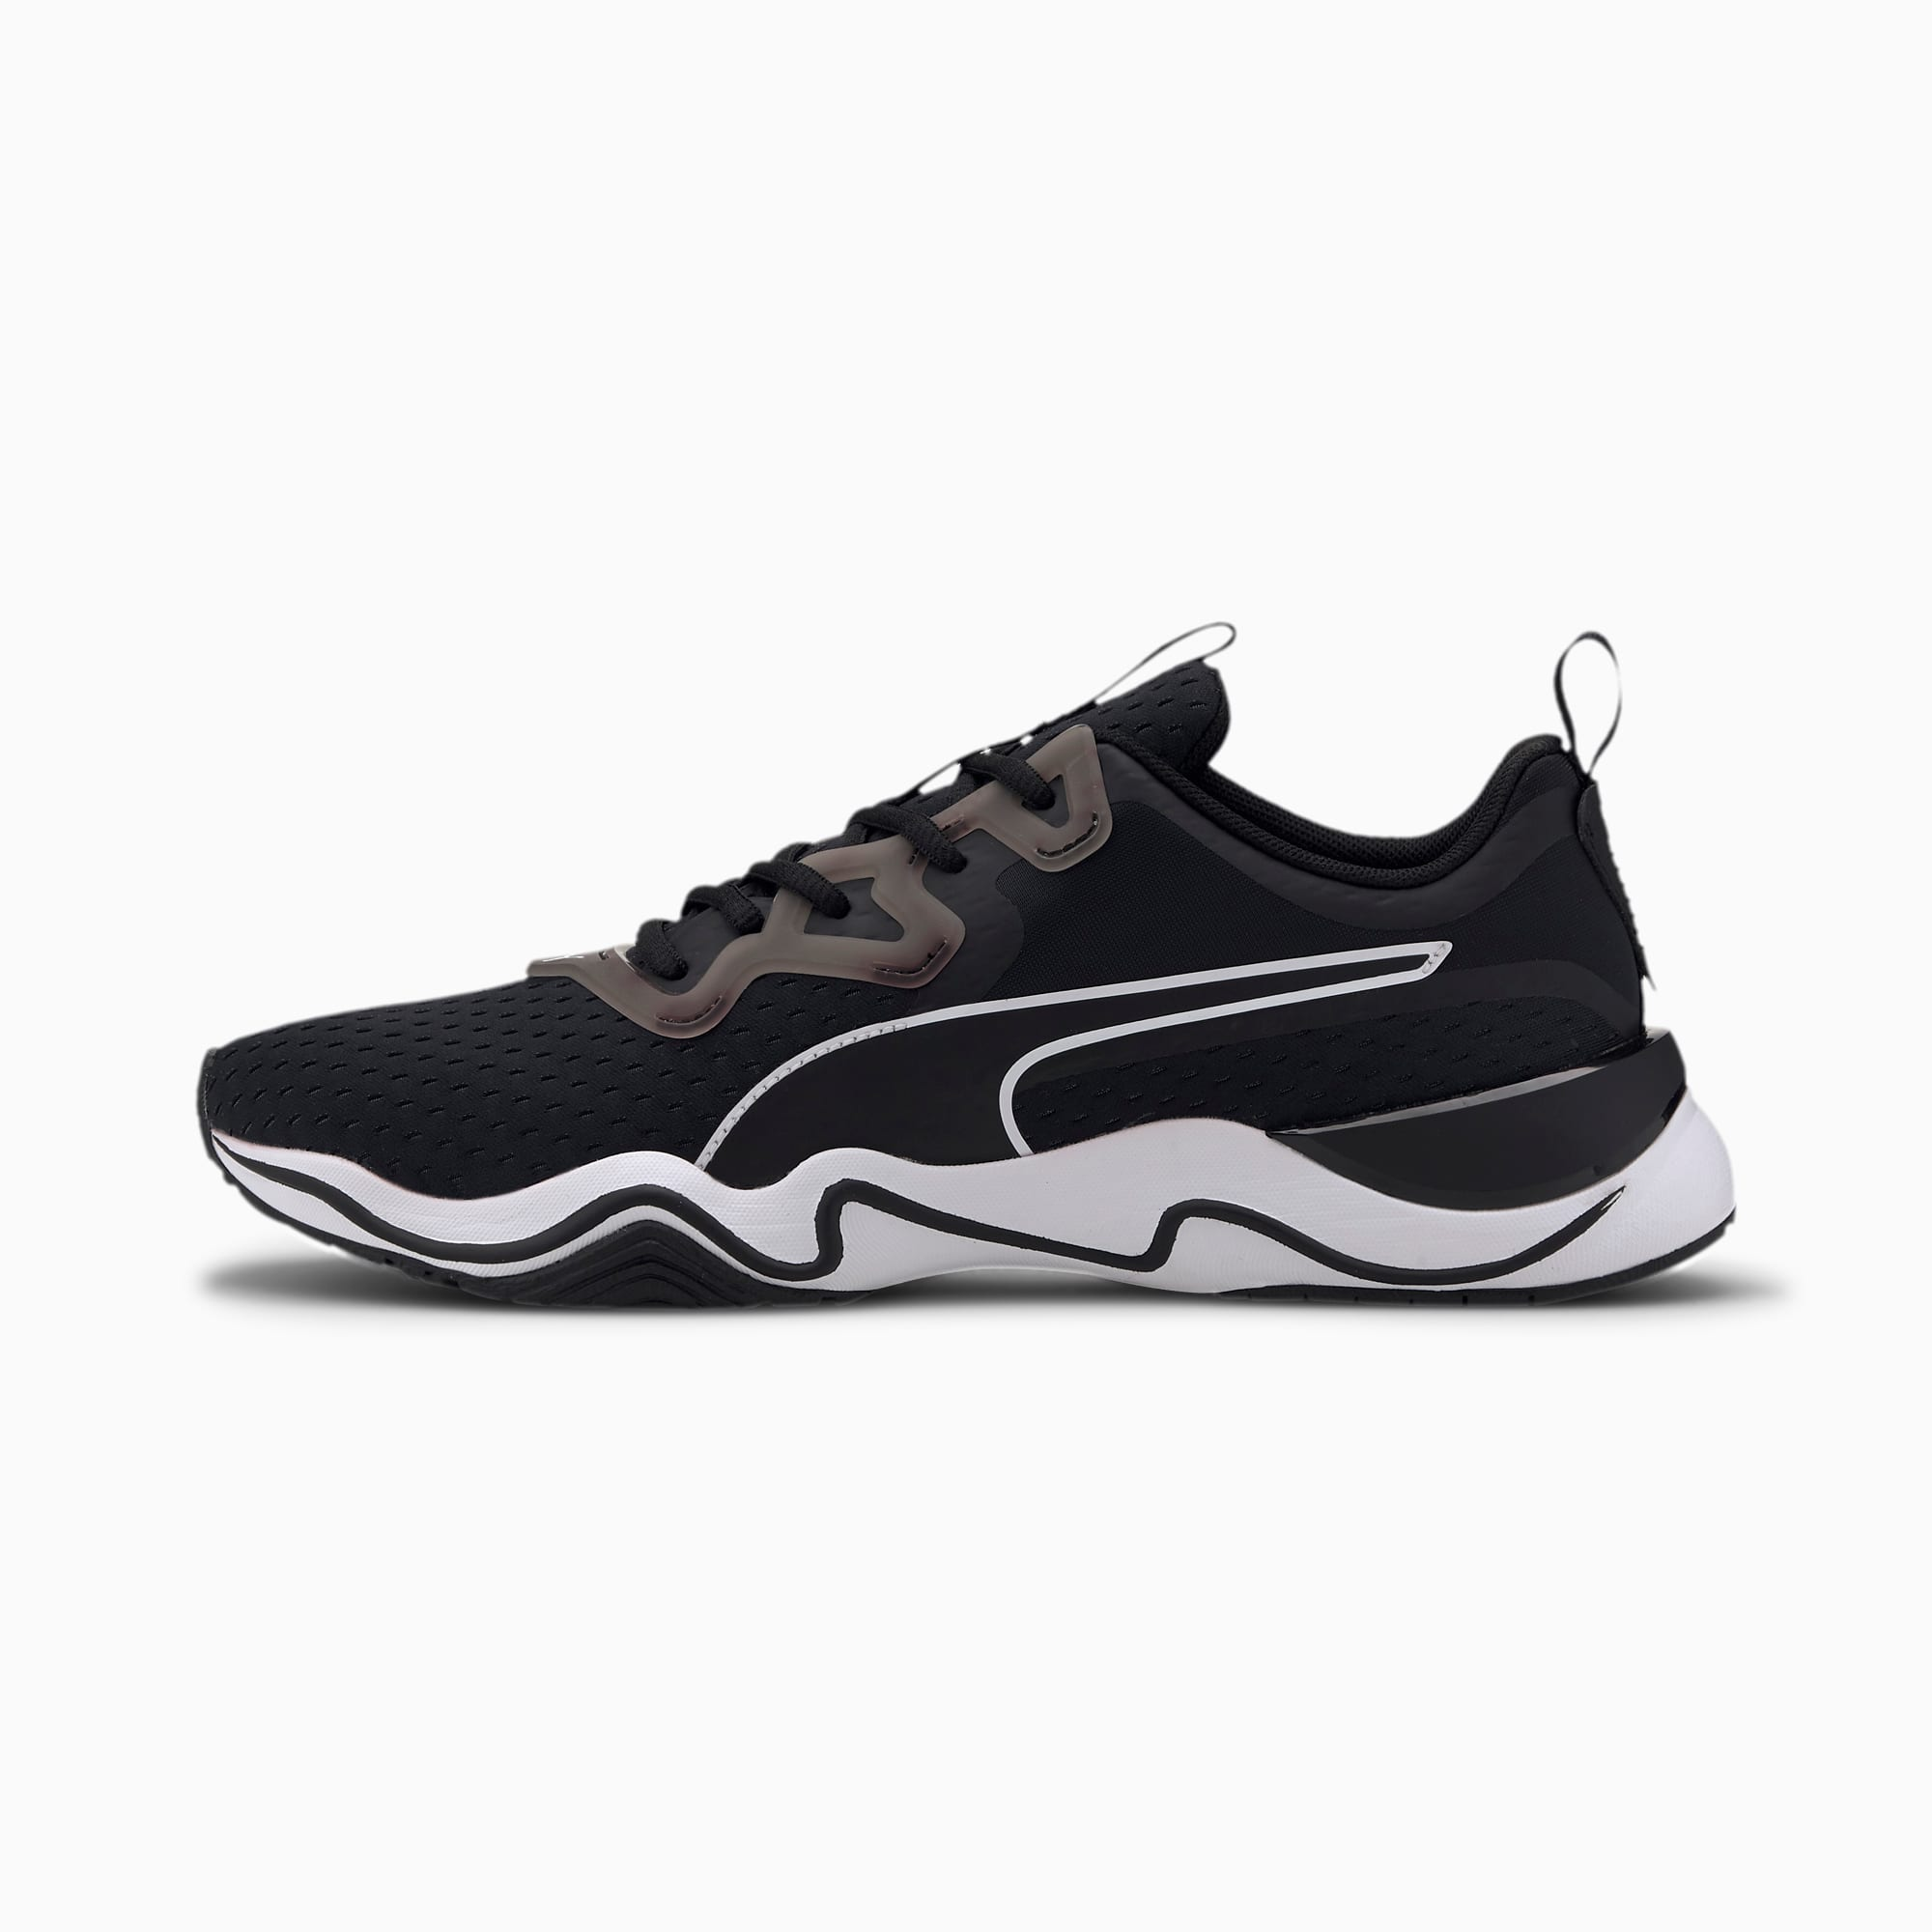 Zone XT Herren Trainingsschuhe | Puma Black Puma White